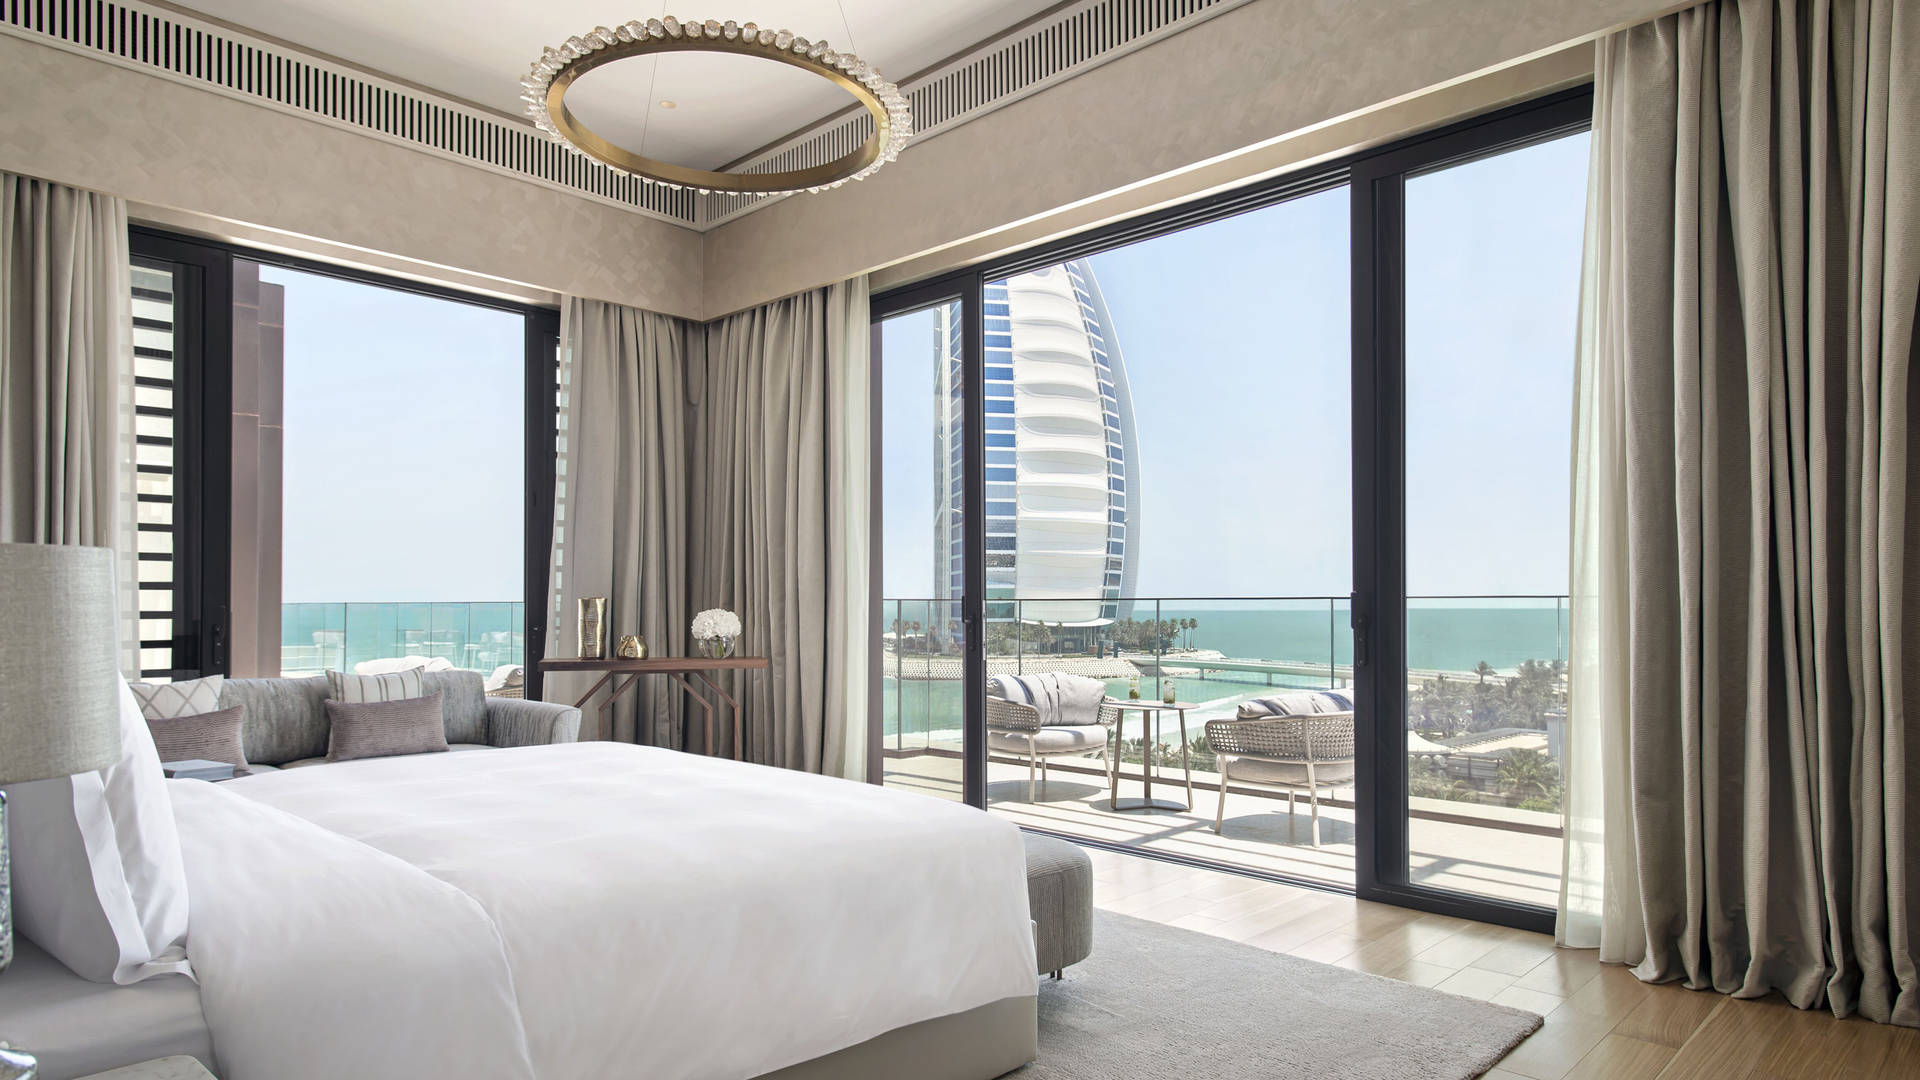 Jumeirah Al Naseem Royal Penthouse Bedroom Dubai